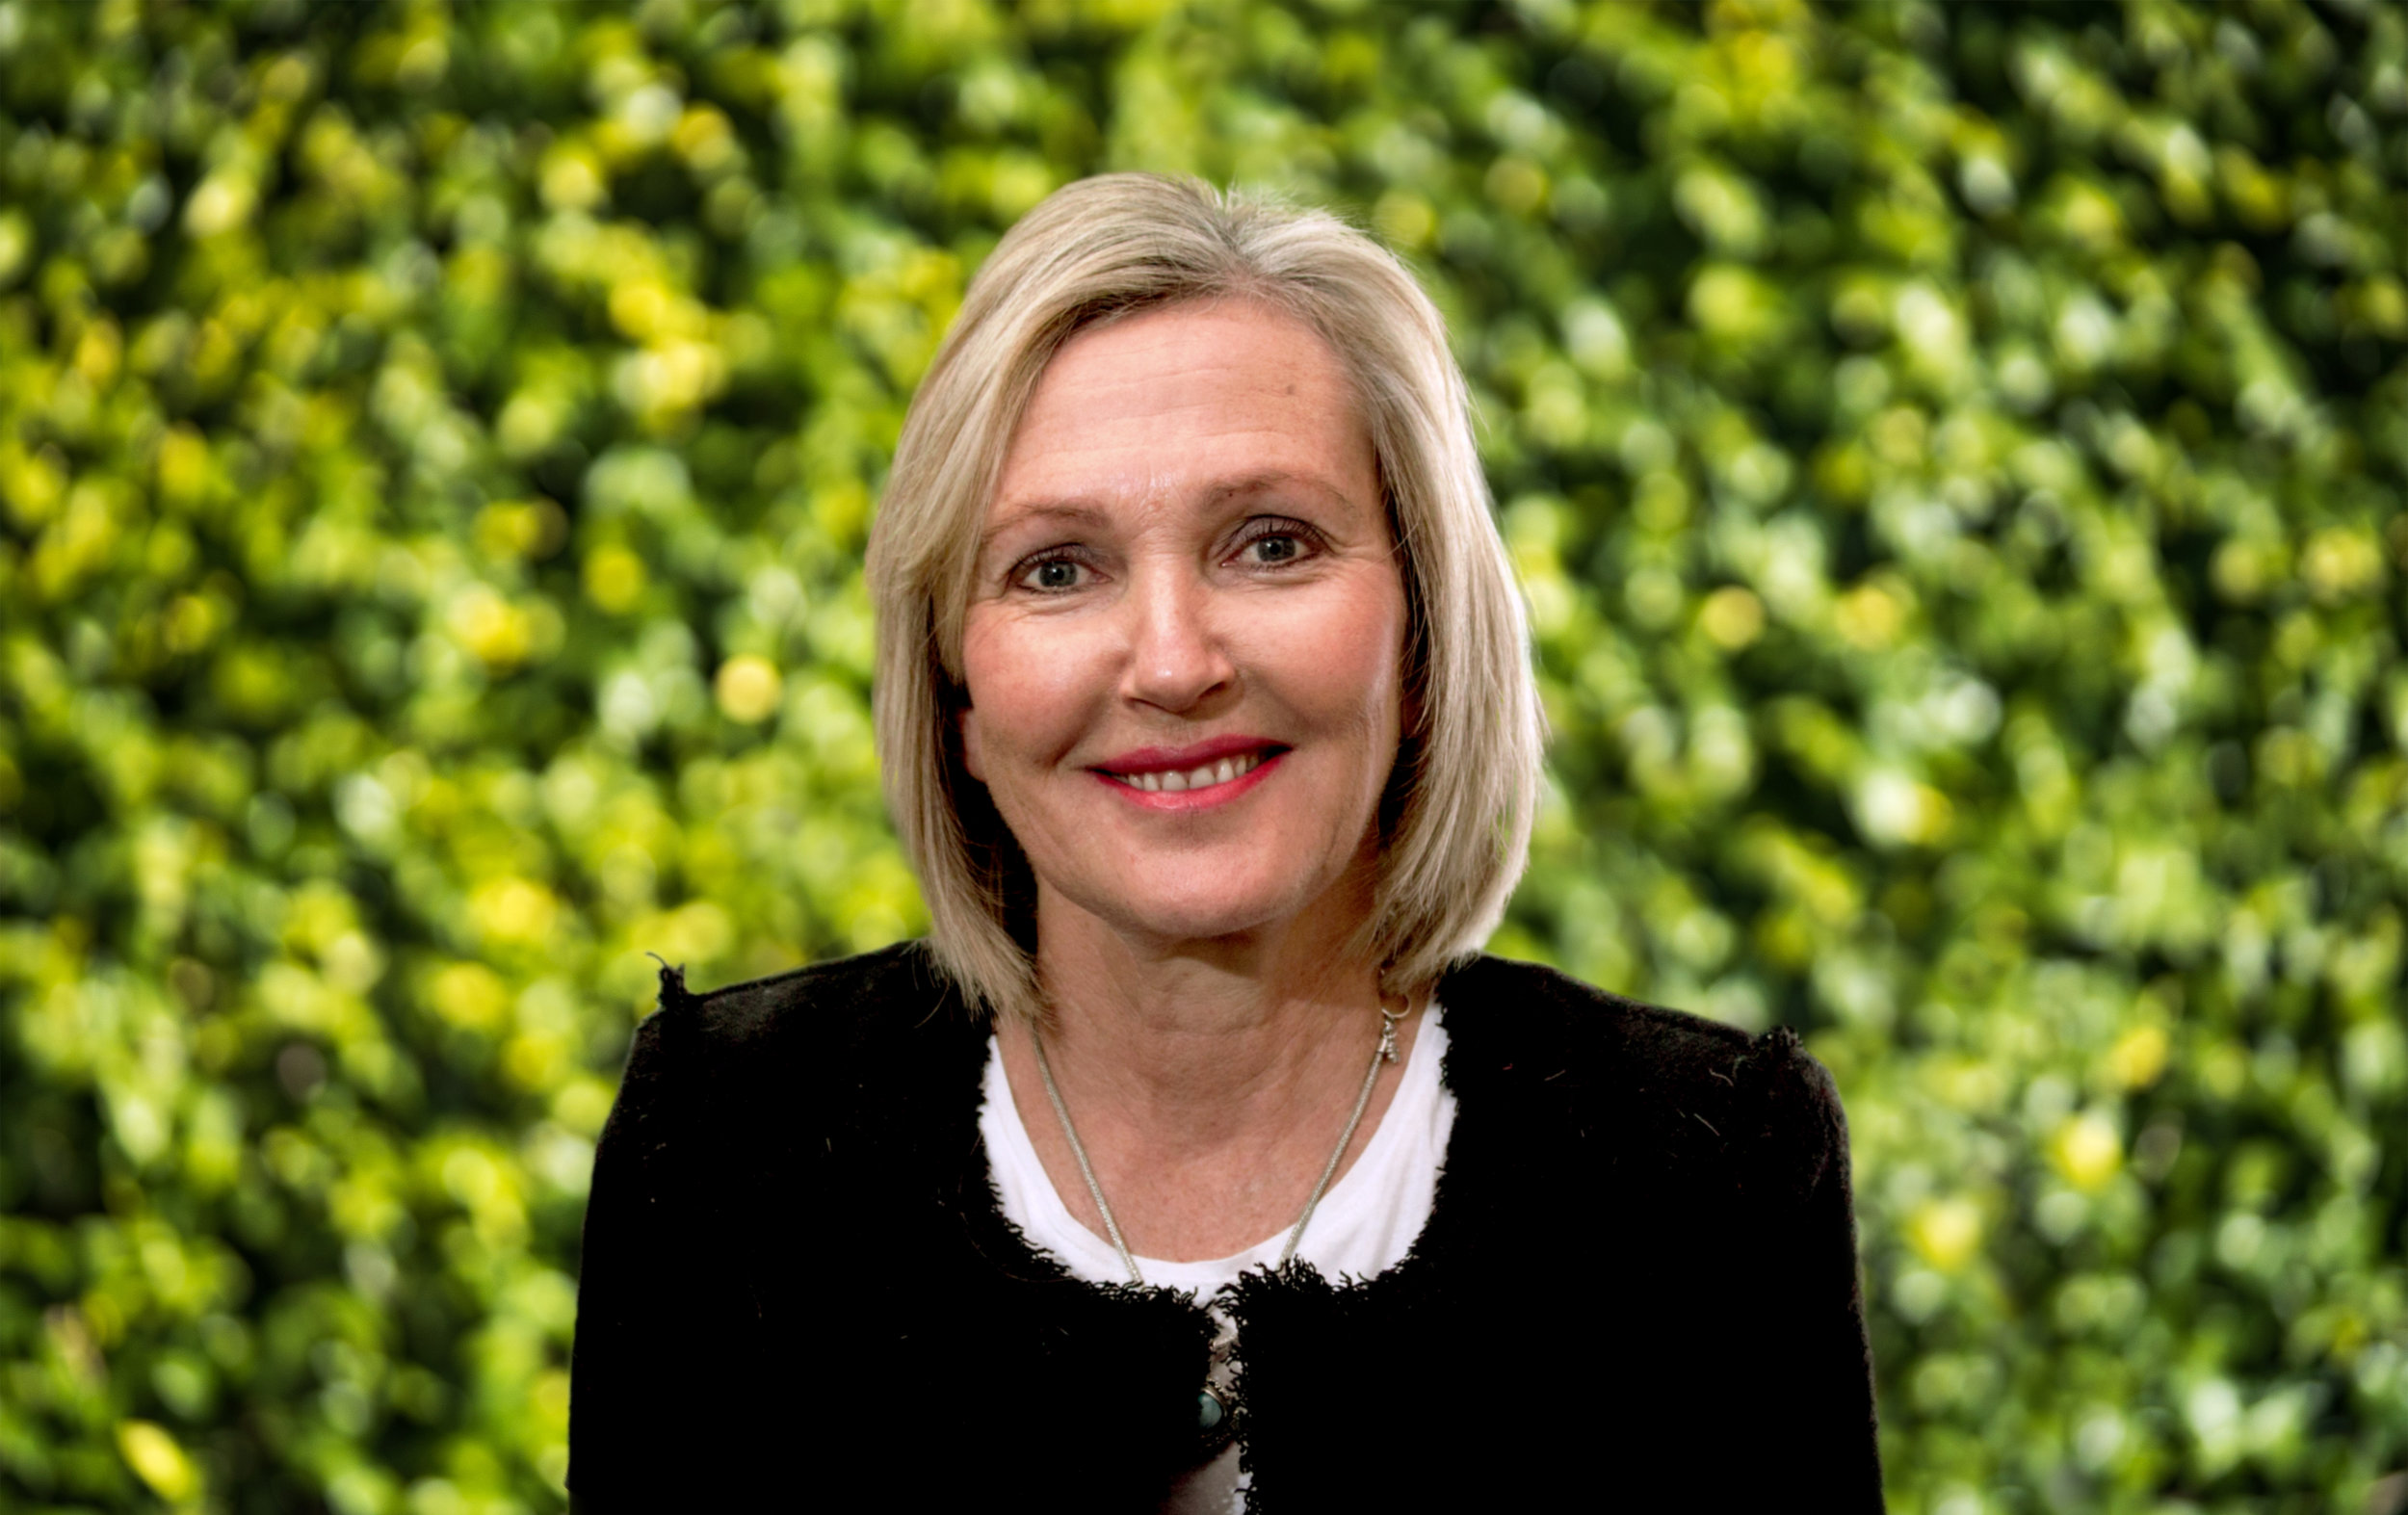 Robyn Scott-Vincent    CEO & Founder   With a long history in documentary film-making, Robyn leads the team and sets the vision for the future. Robyn is a creative force who has a strong belief in driving social change.